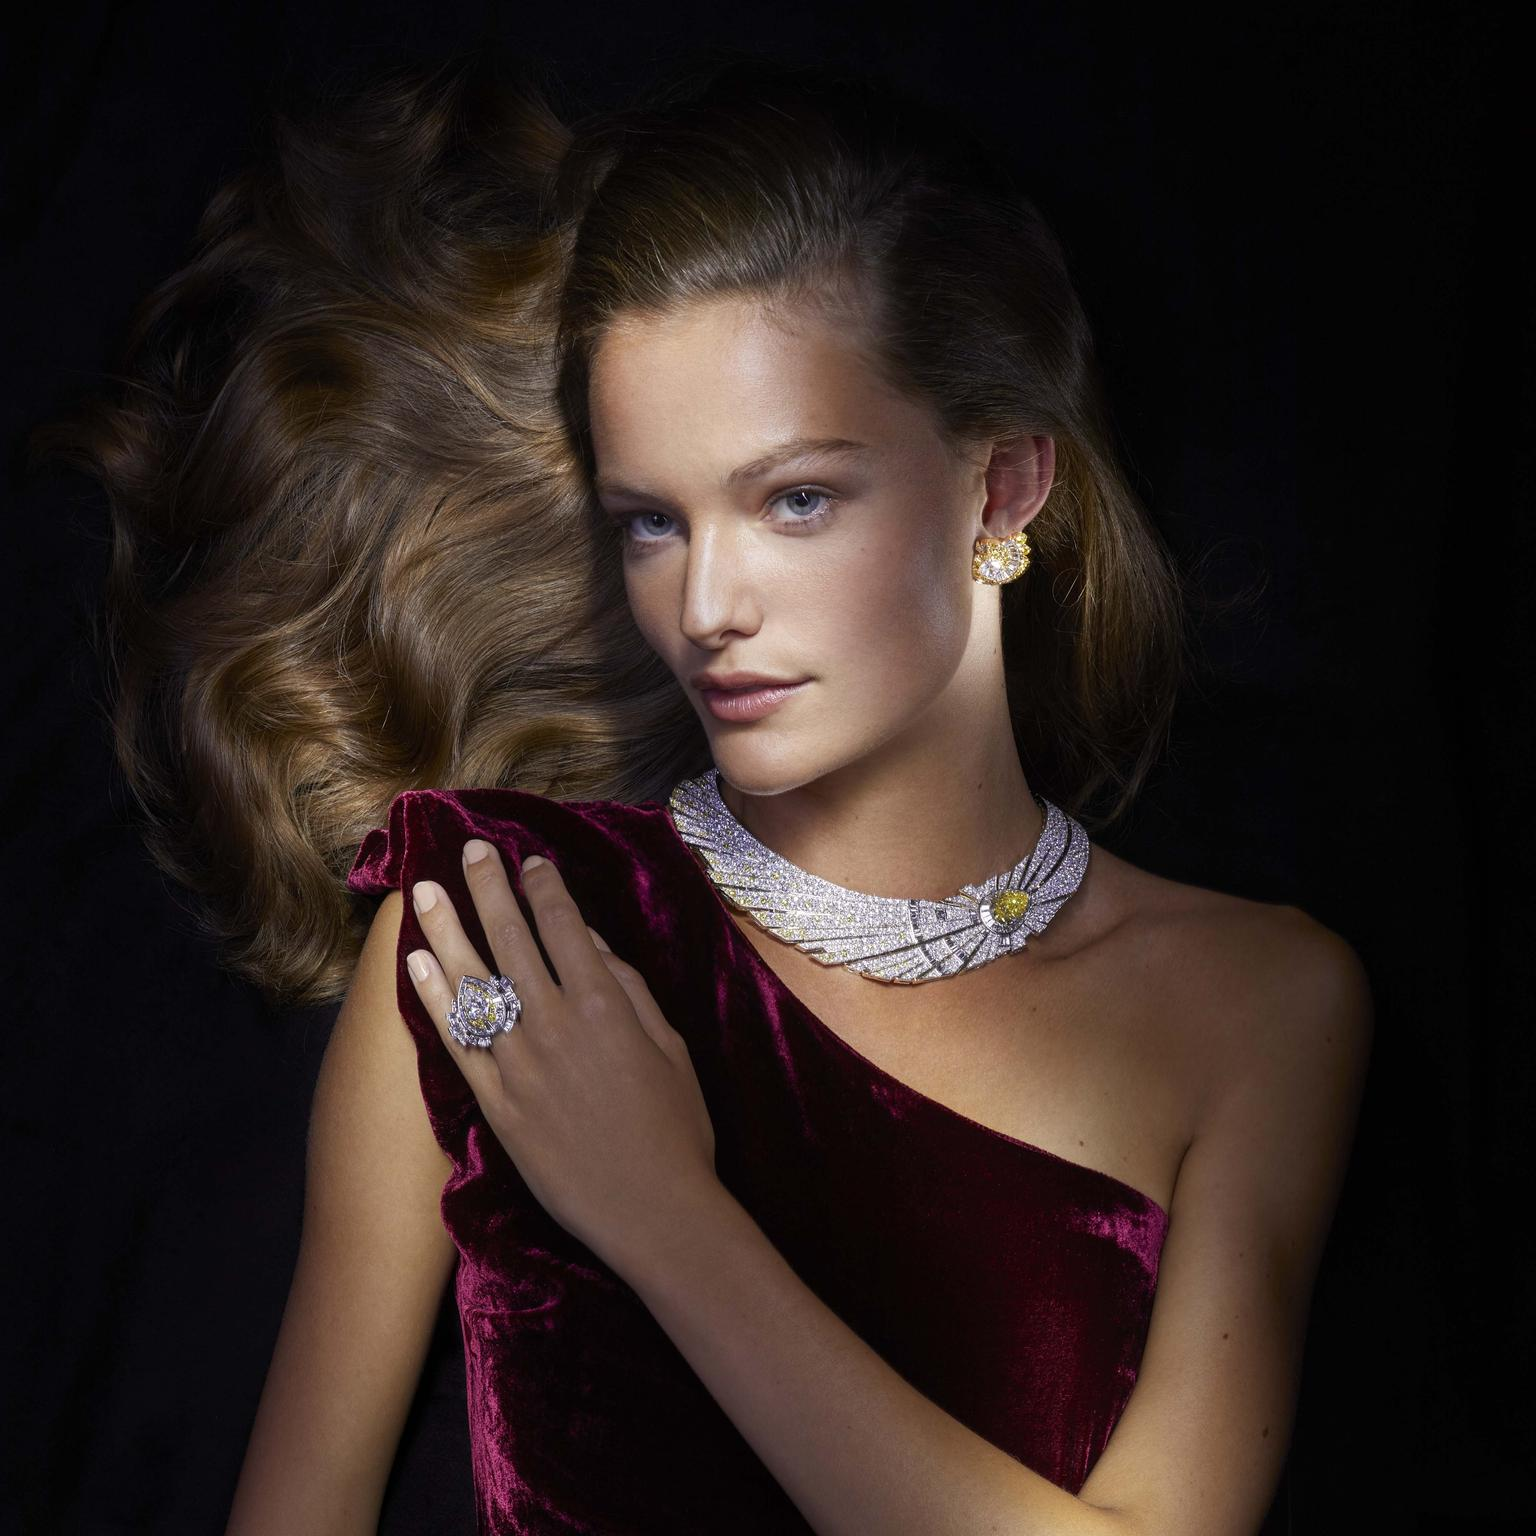 Halley necklace and ring by Van Cleef and Arpels on model